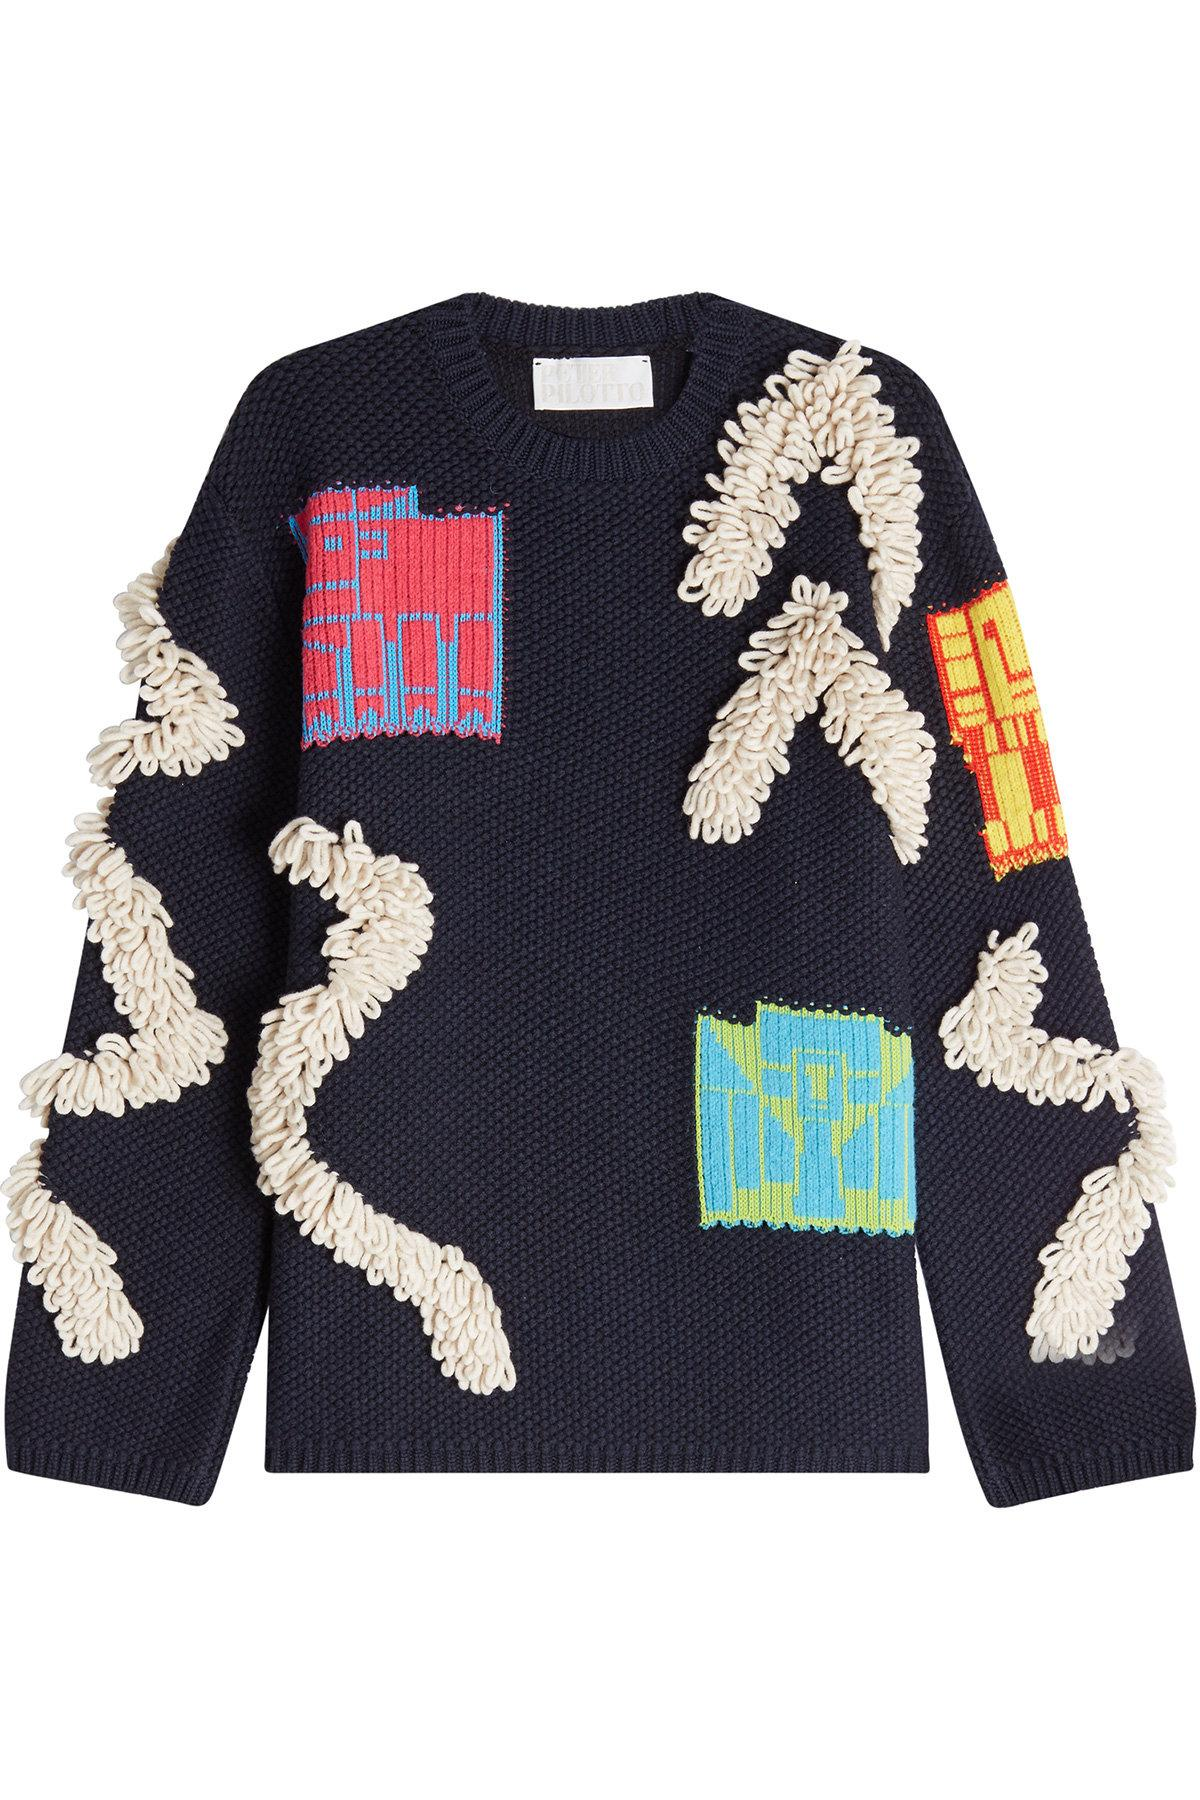 Peter Pilotto Pullover With Wool And Cotton In Blue